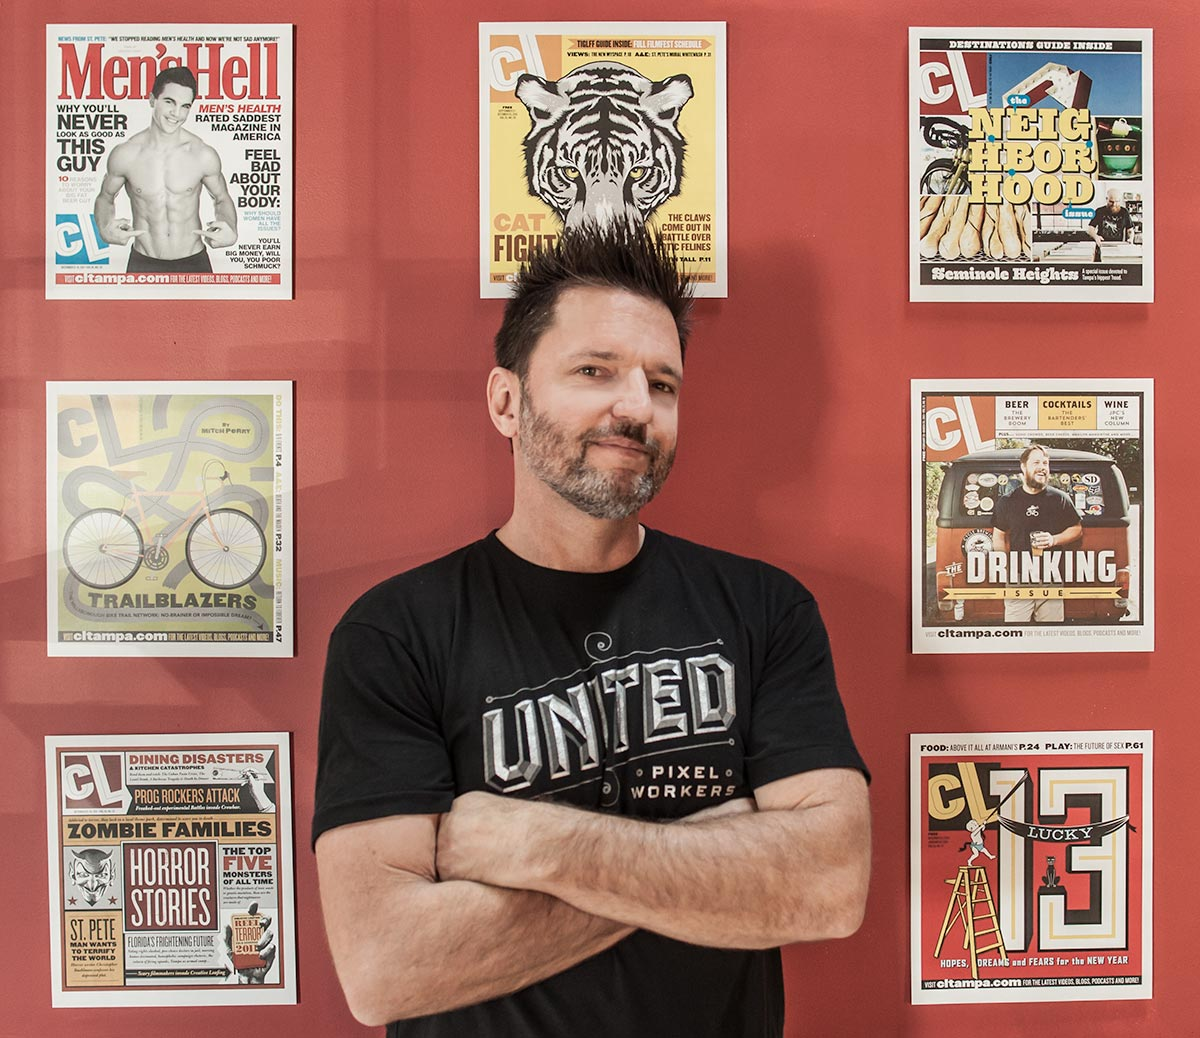 A retrospective show featuring covers from 25 years of   Creative Loafing  . Todd has designed hundreds of covers for the Tampa based weekly and won numerous awards from the Association of Alternative Newsmedia, the Society for Professional Journalists and his covers have appeared in  Print magazine.